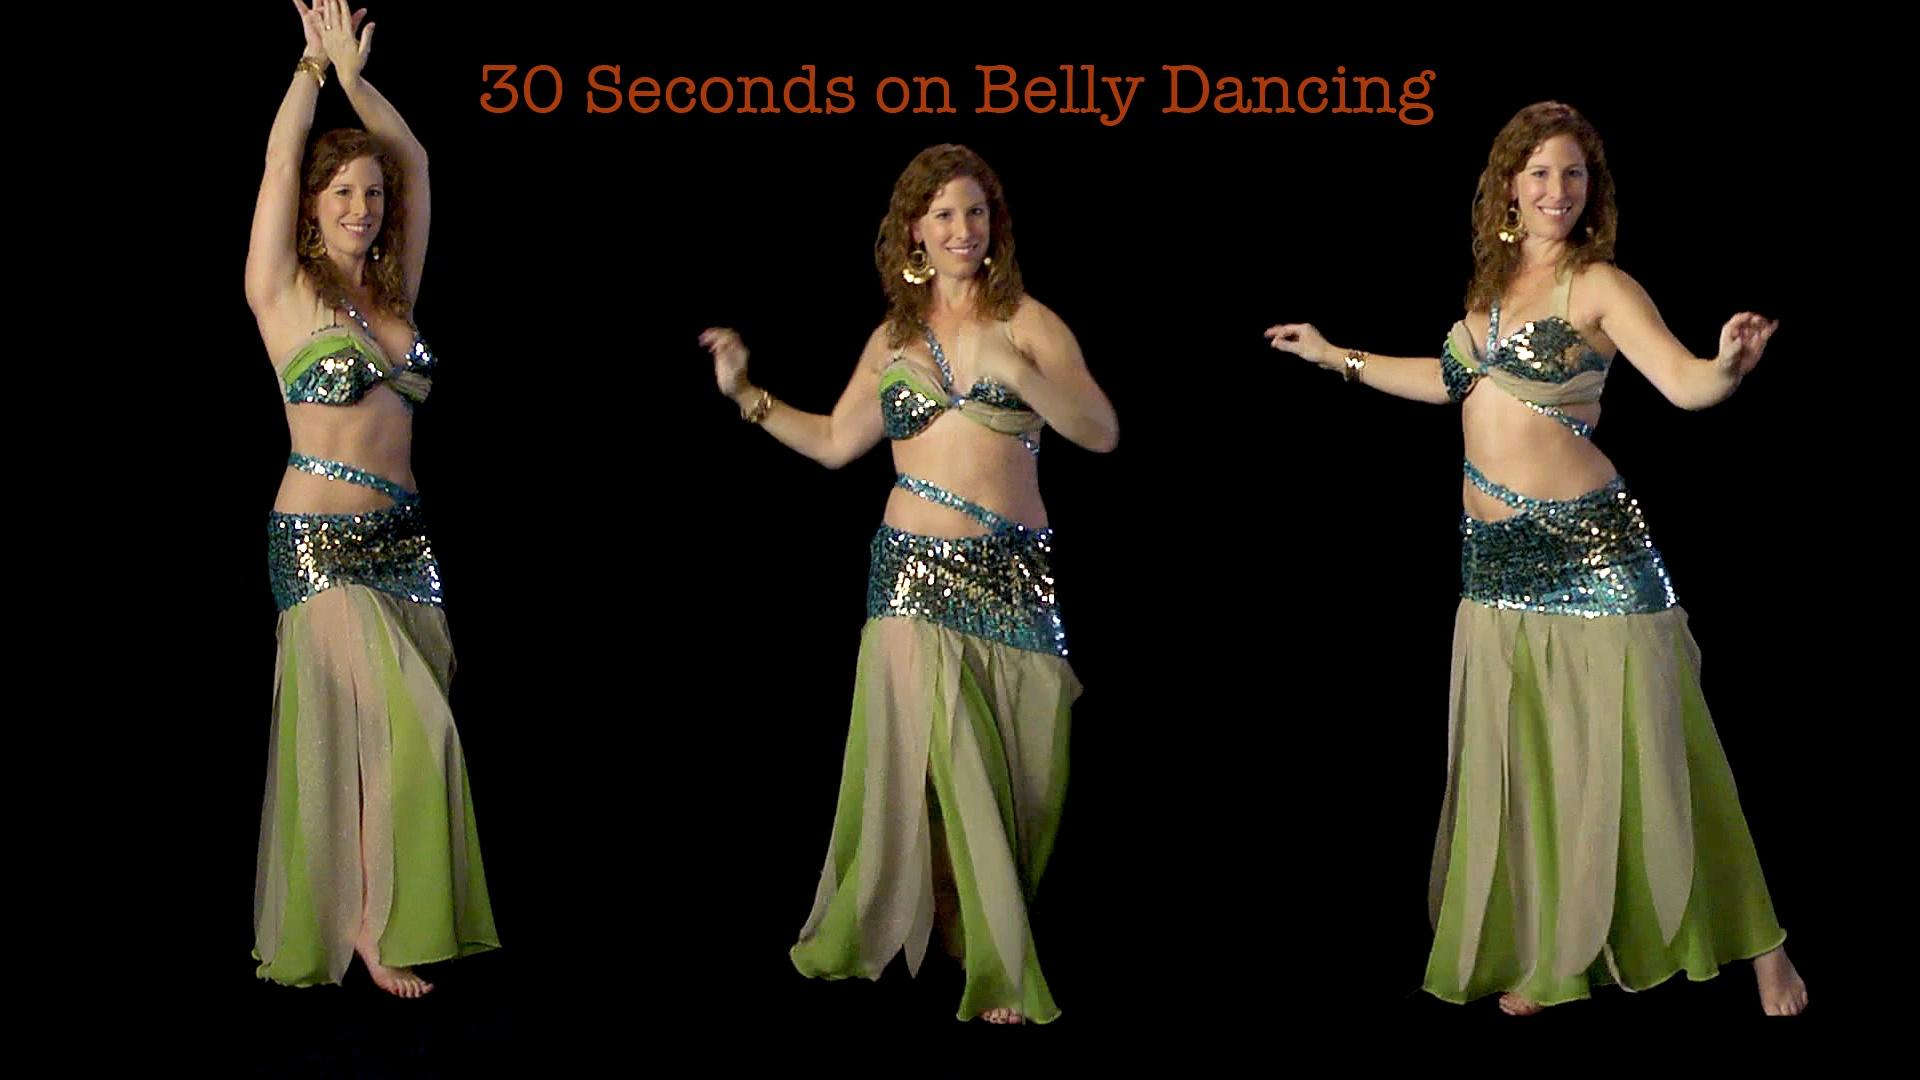 Kate Sweeny: 30 Seconds on Belly Dancing image